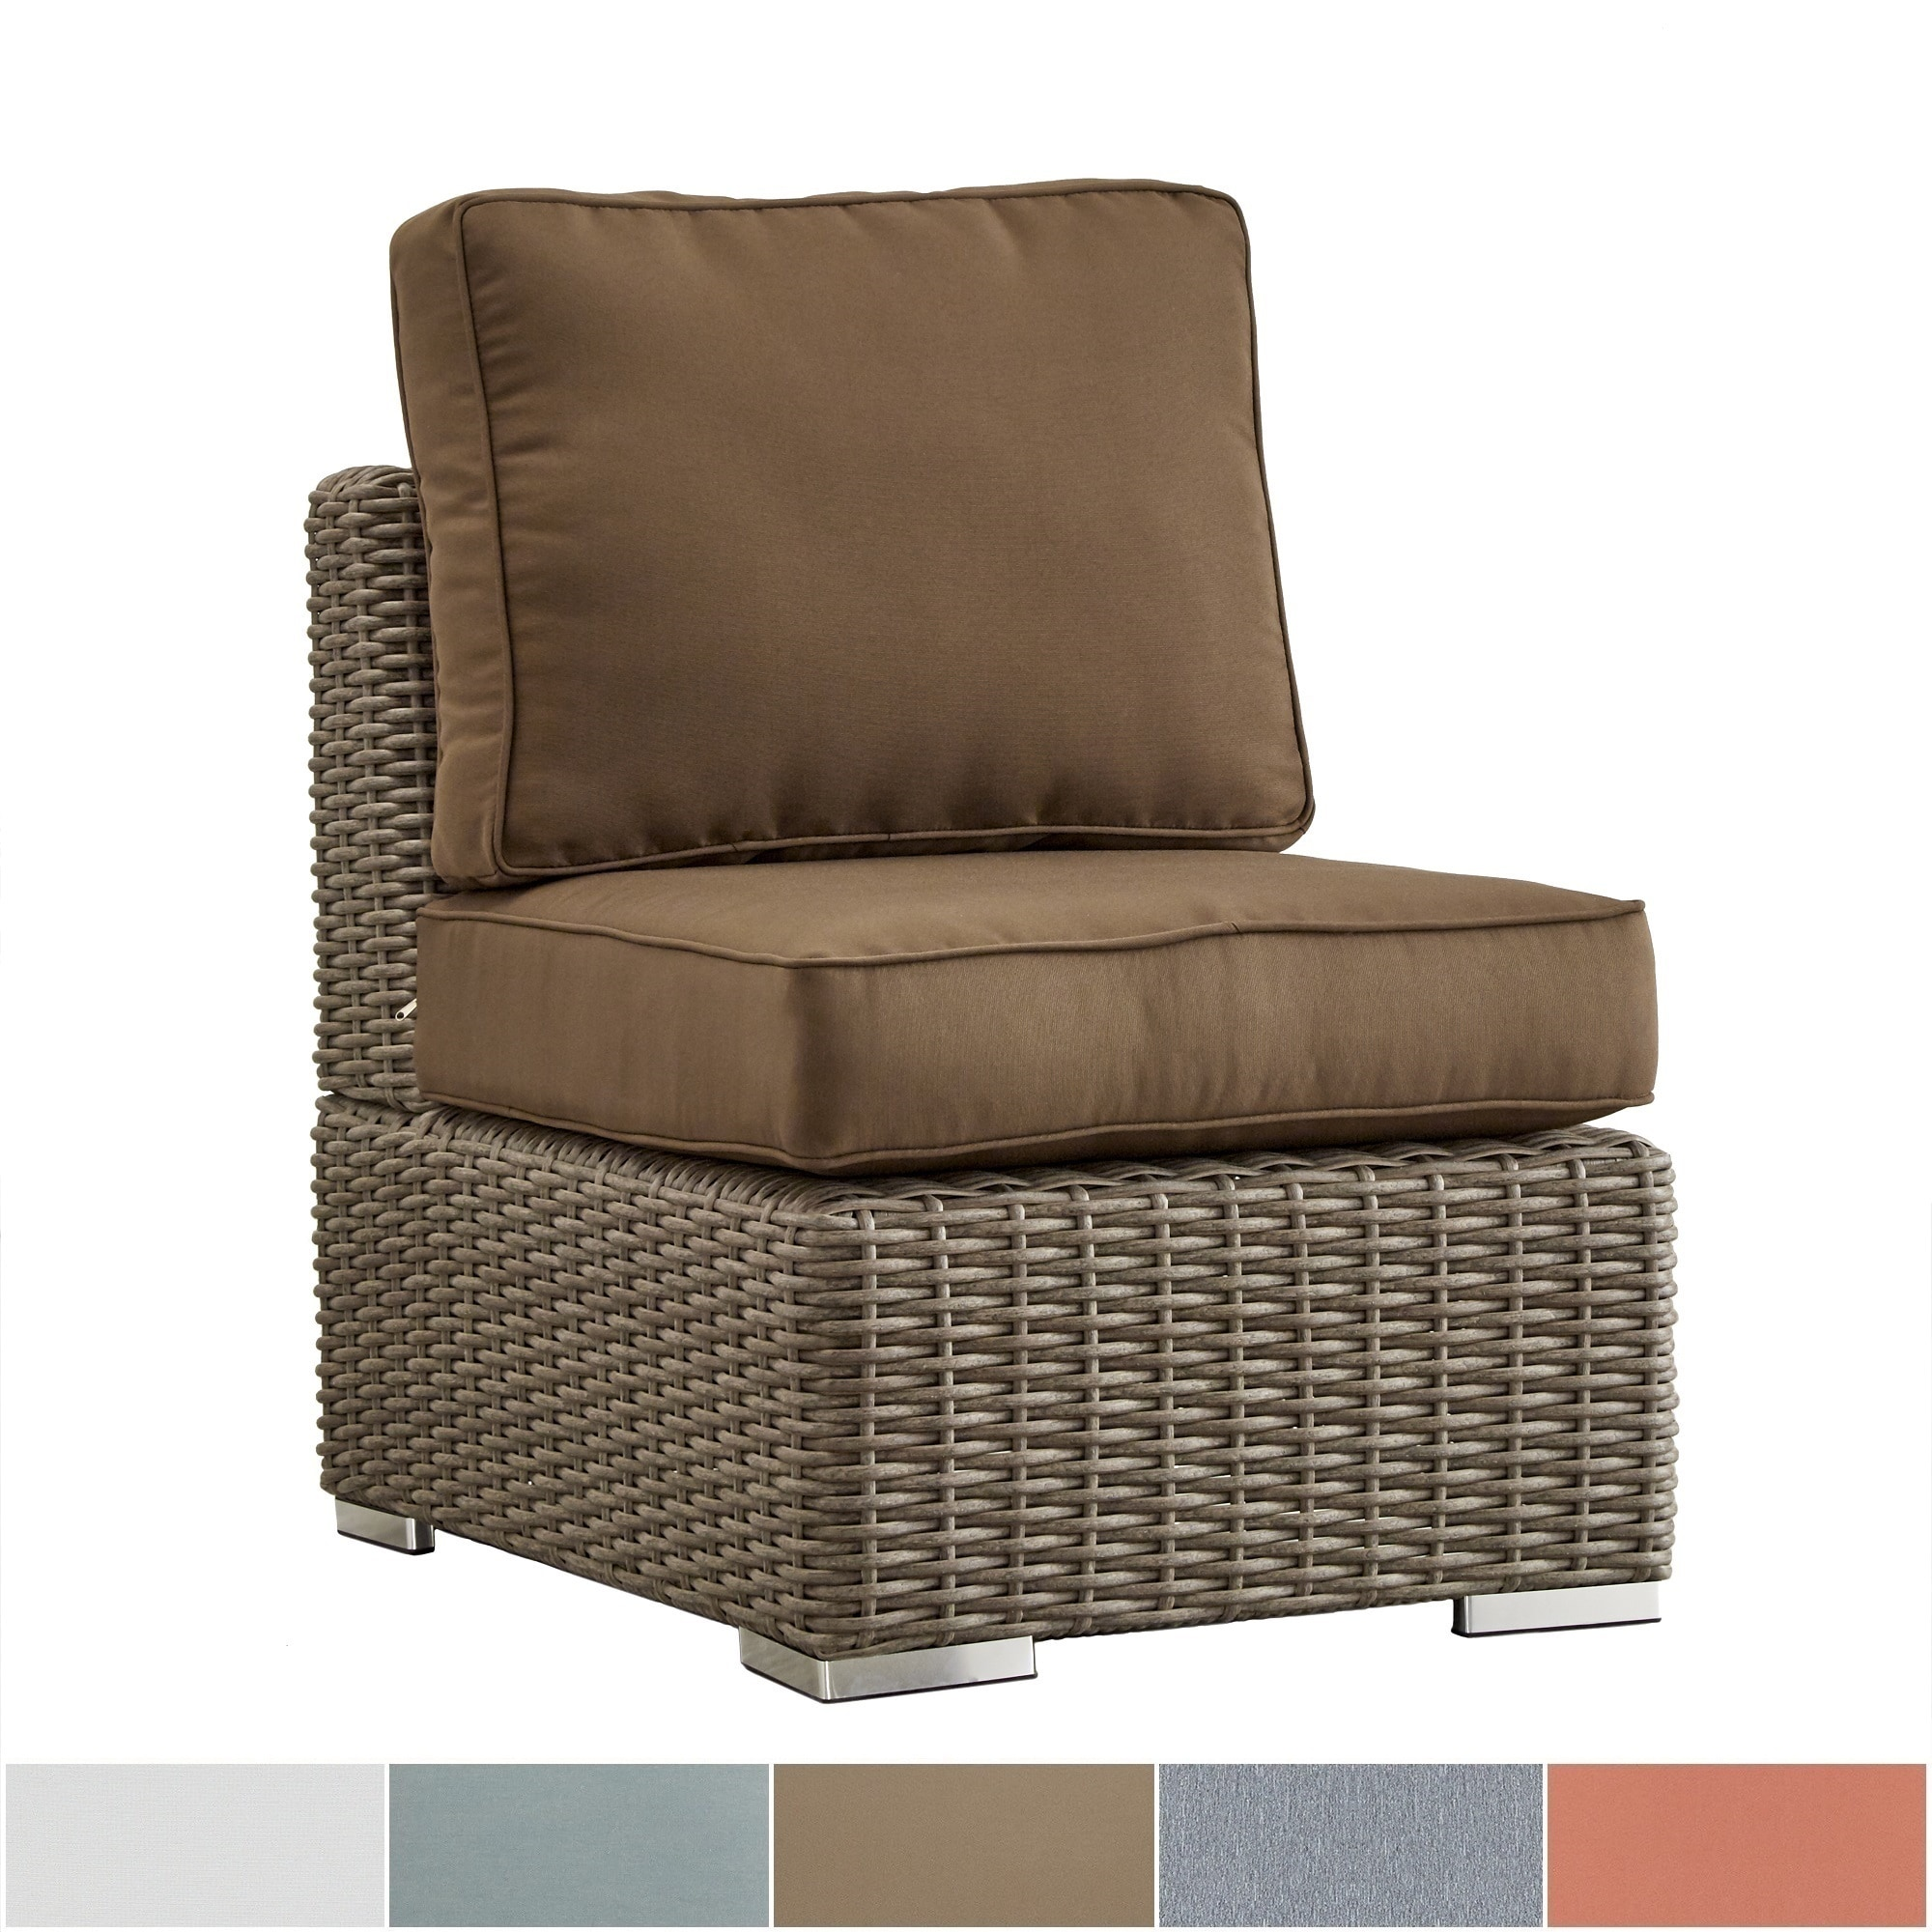 HomeVance iNSPIRE Q Barbados Wicker Outdoor Cushioned Brown Mocha Sectional Middle Chair Oasis